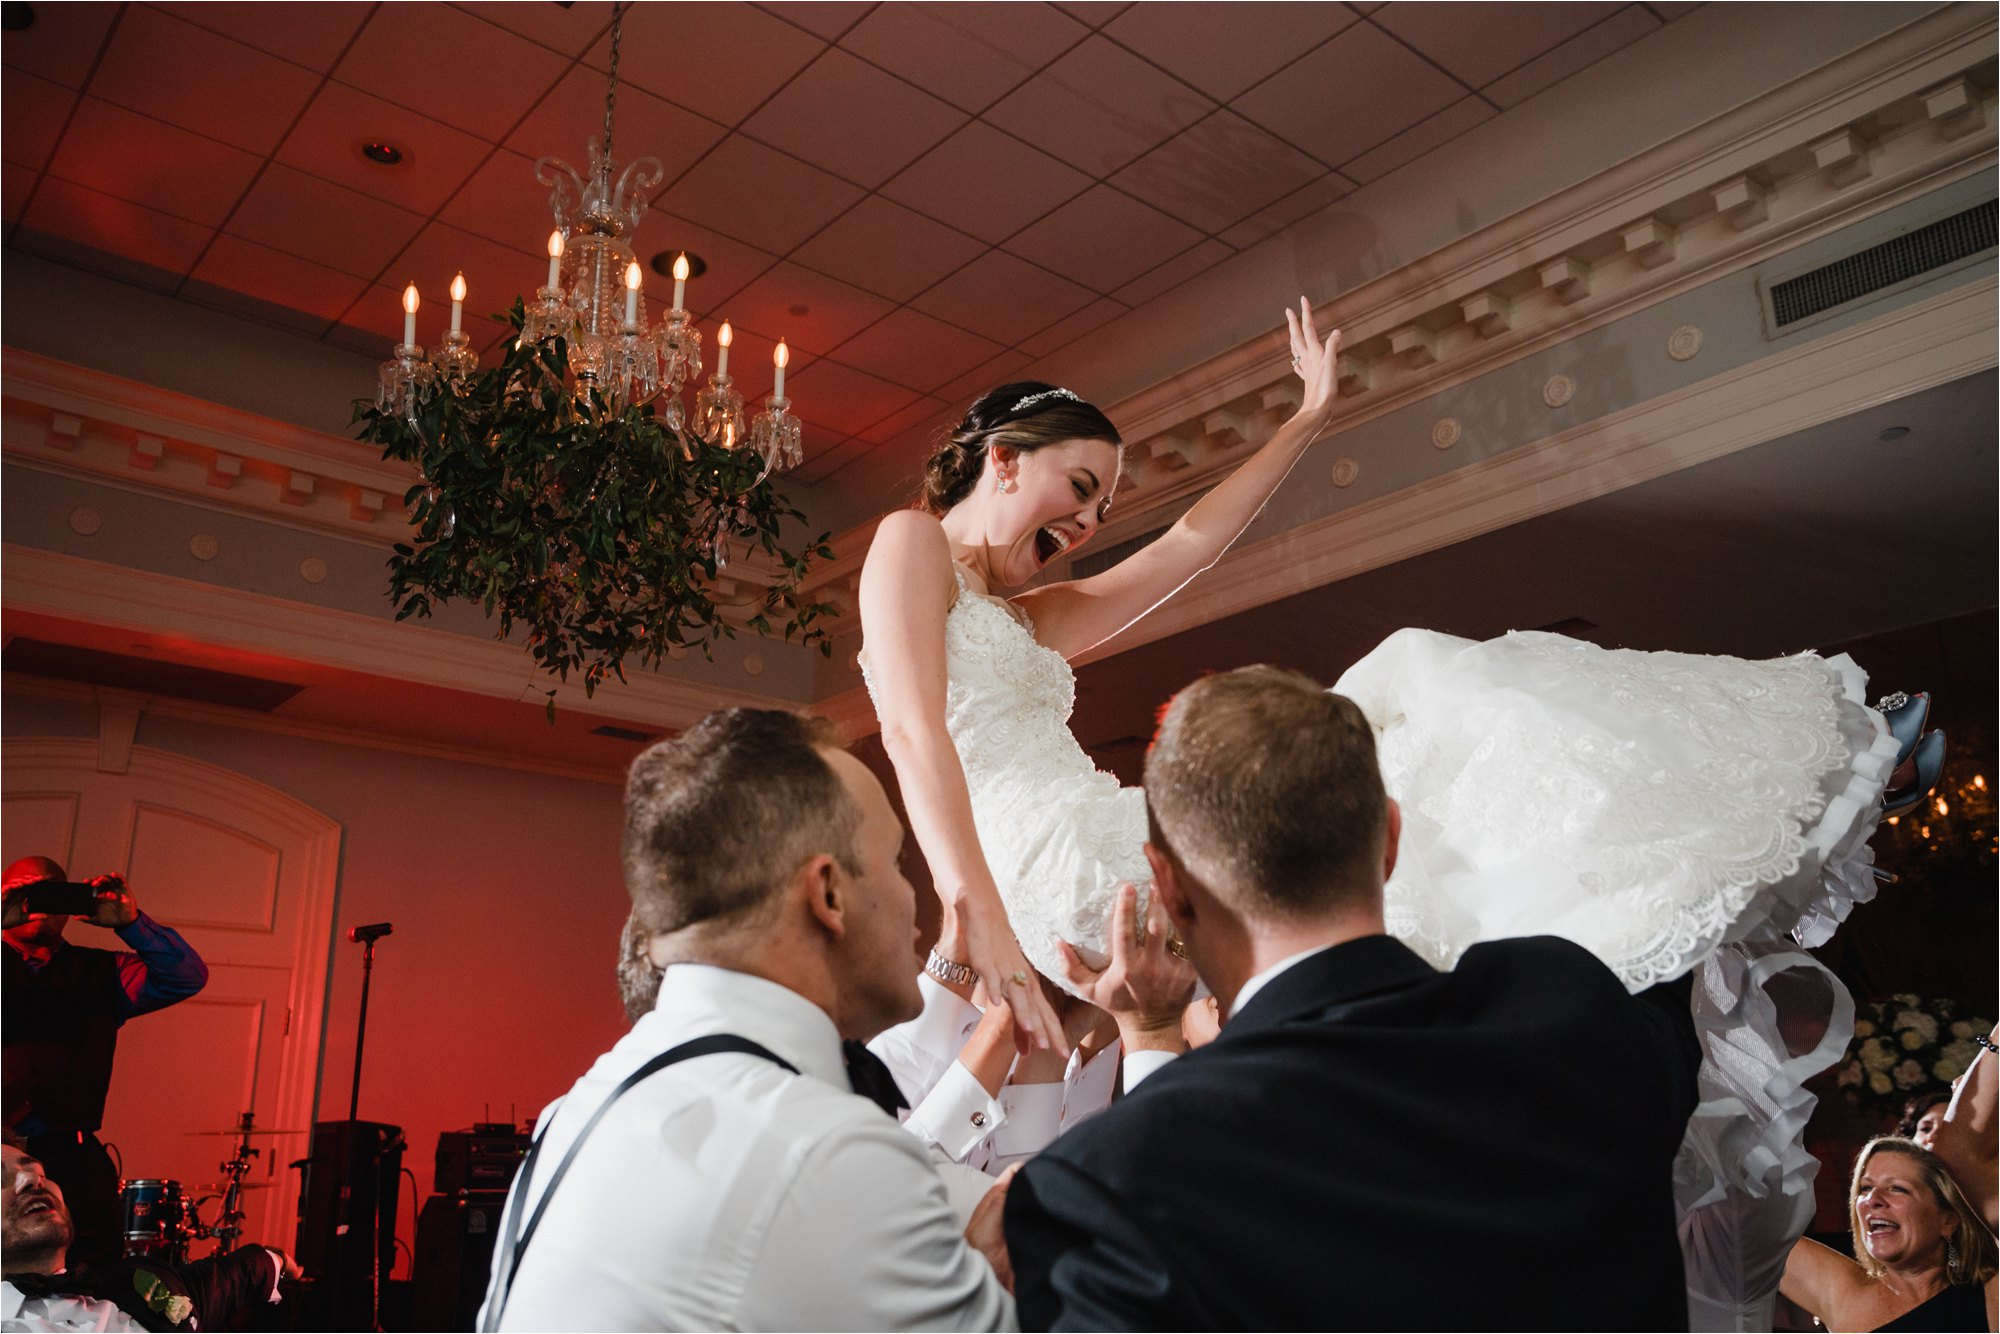 Bride lifted up dancing at wedding